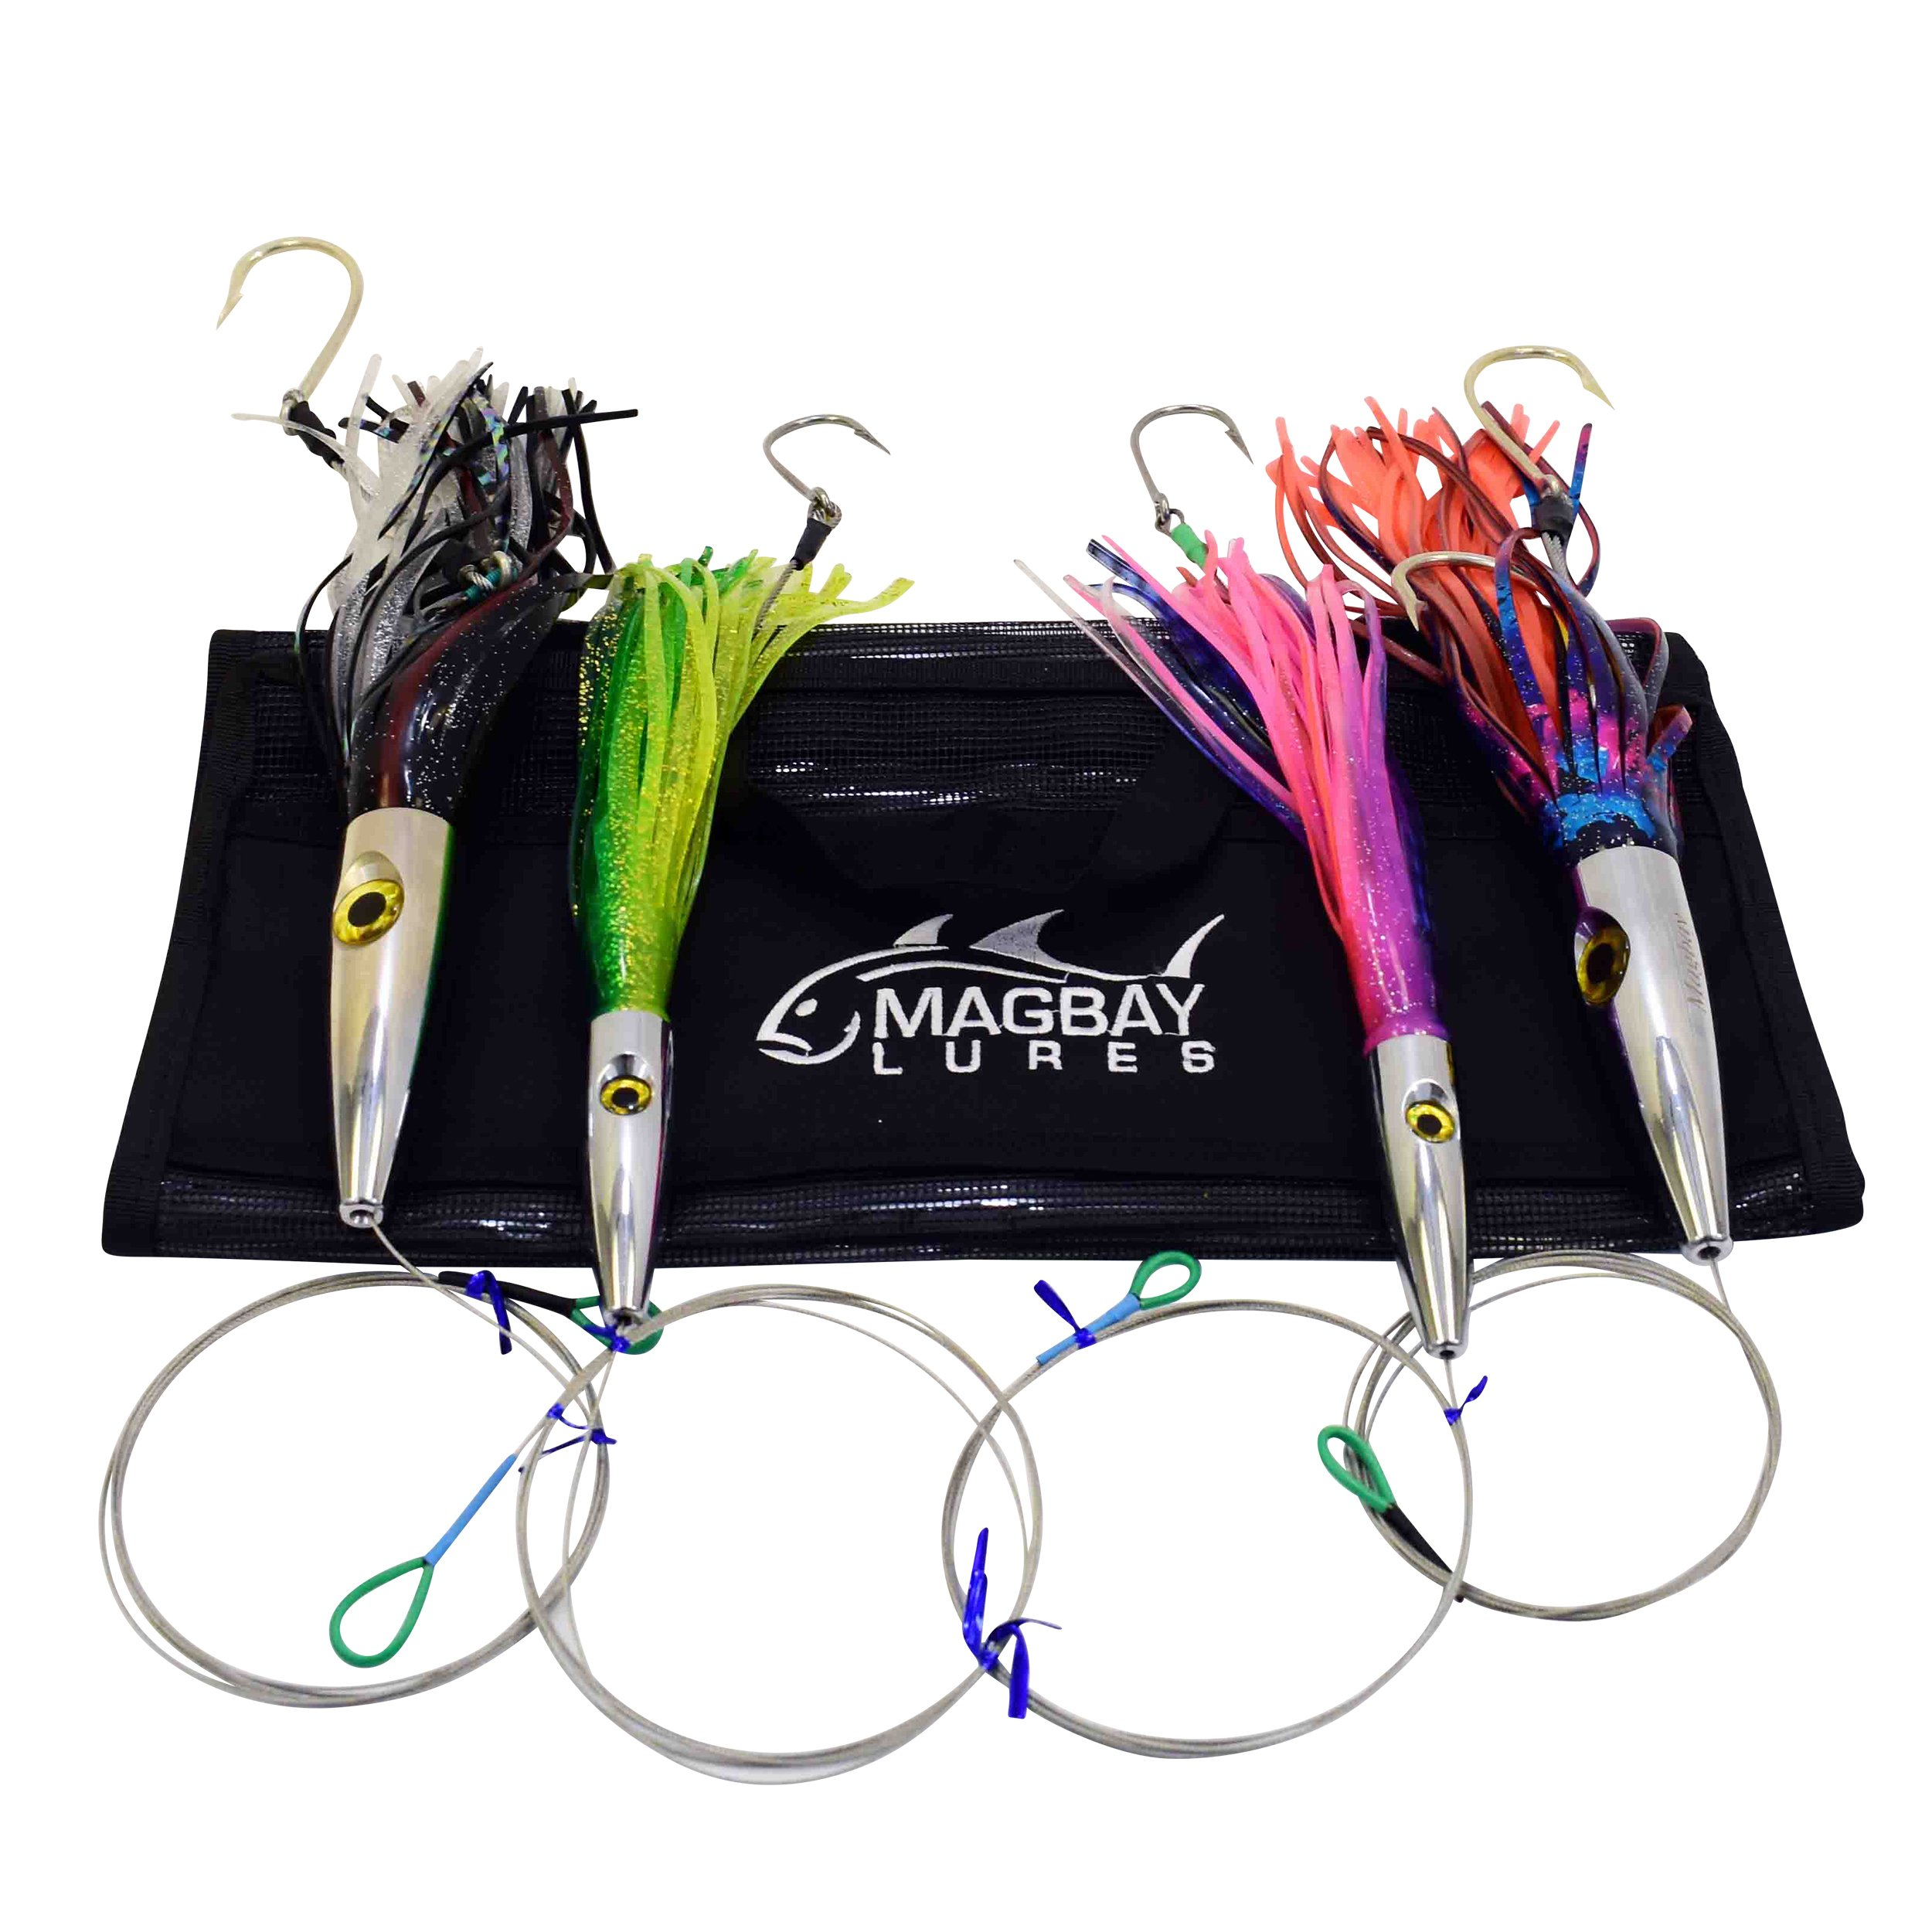 High Speed WAHOO Trolling Set with Lure Bag + Fully Wire and Cable Rigged by MagBay Lures